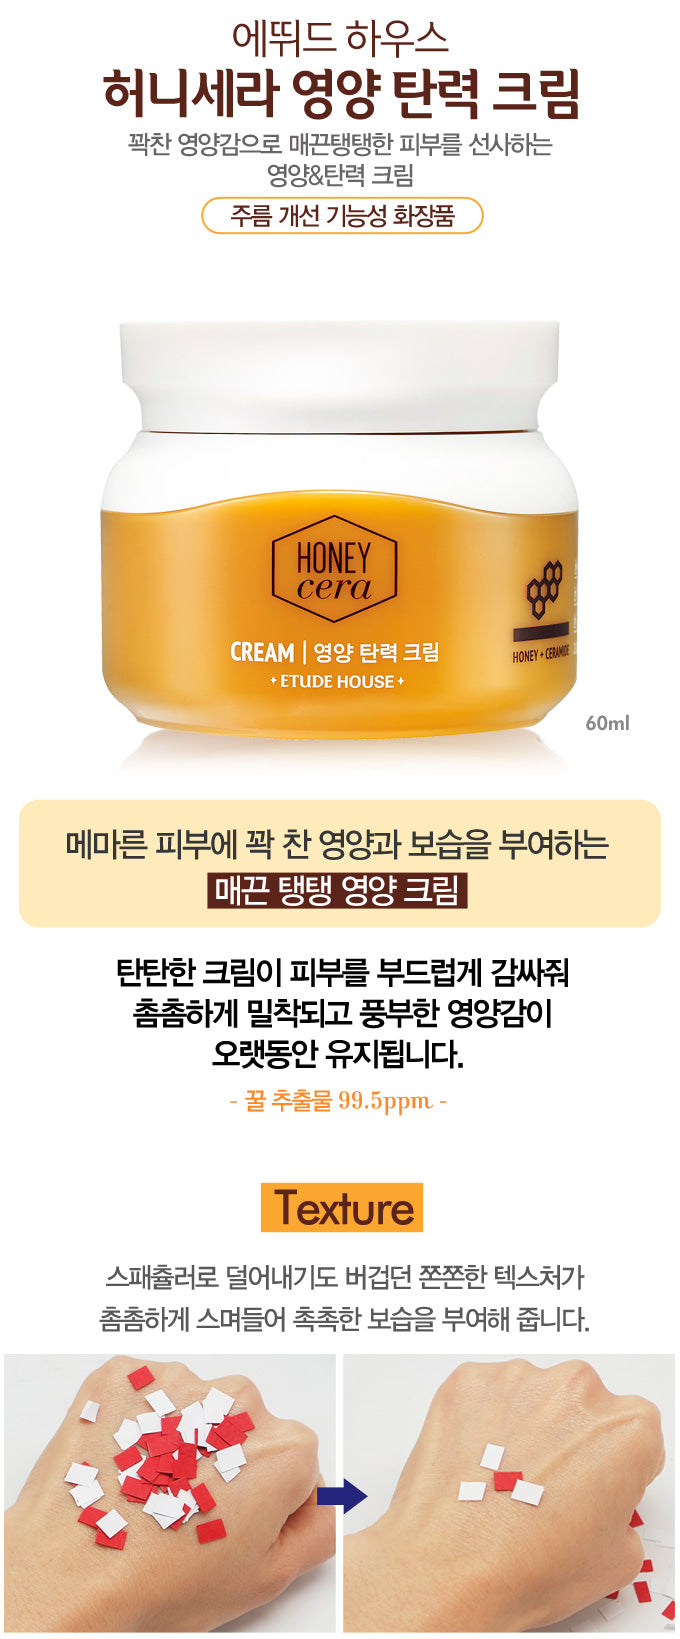 Etude House - Honey Cera Cream